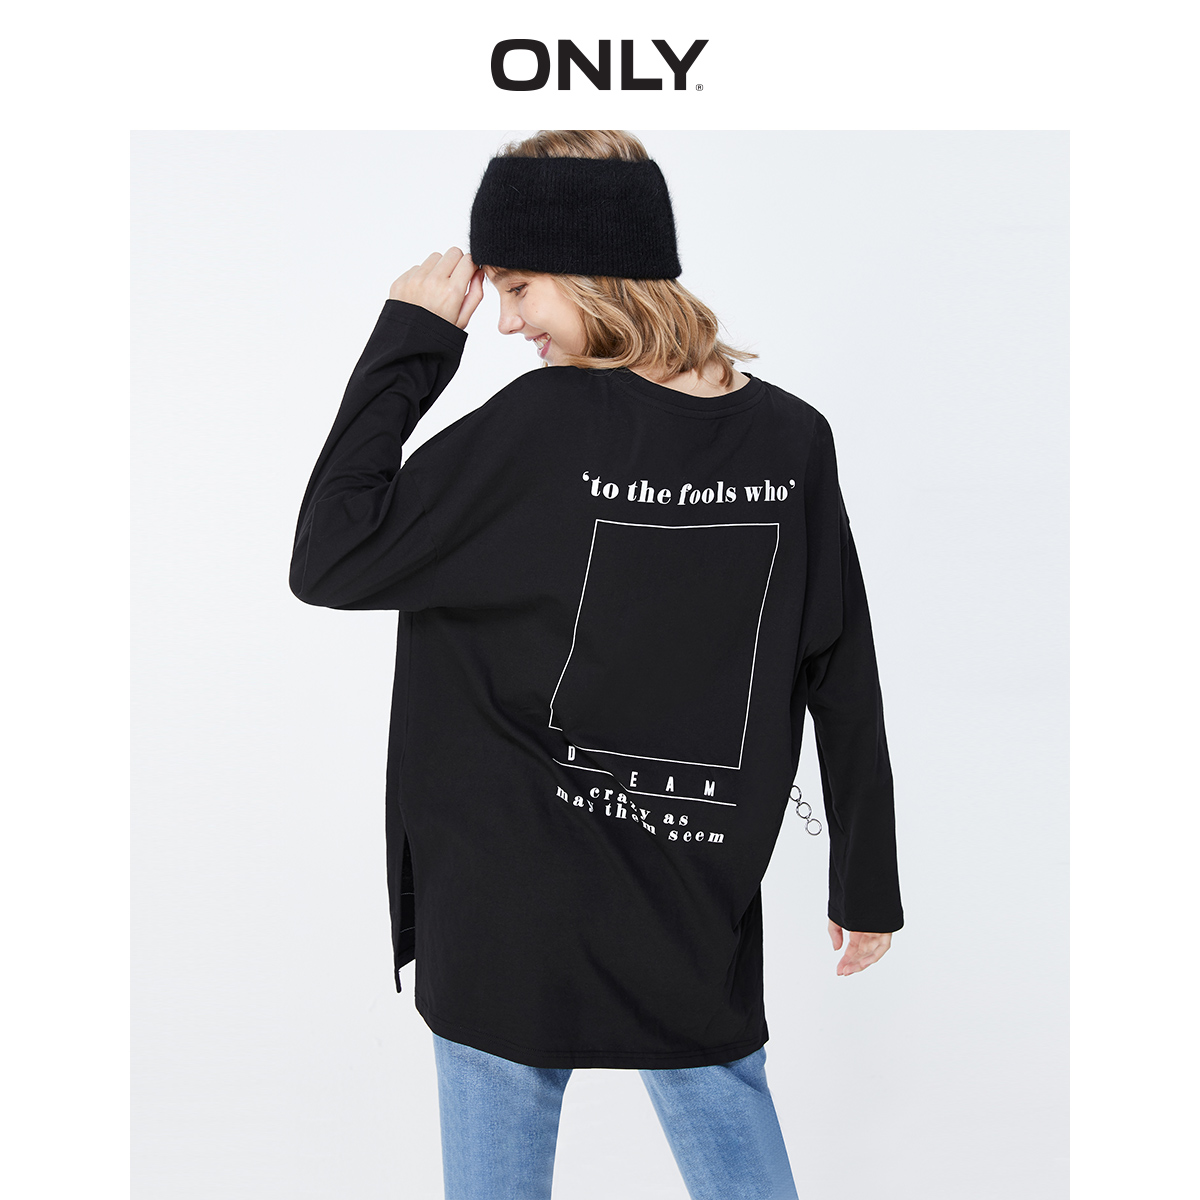 ONLY Women's Loose Fit Letter Print Long-sleeved T-shirt | 119302513